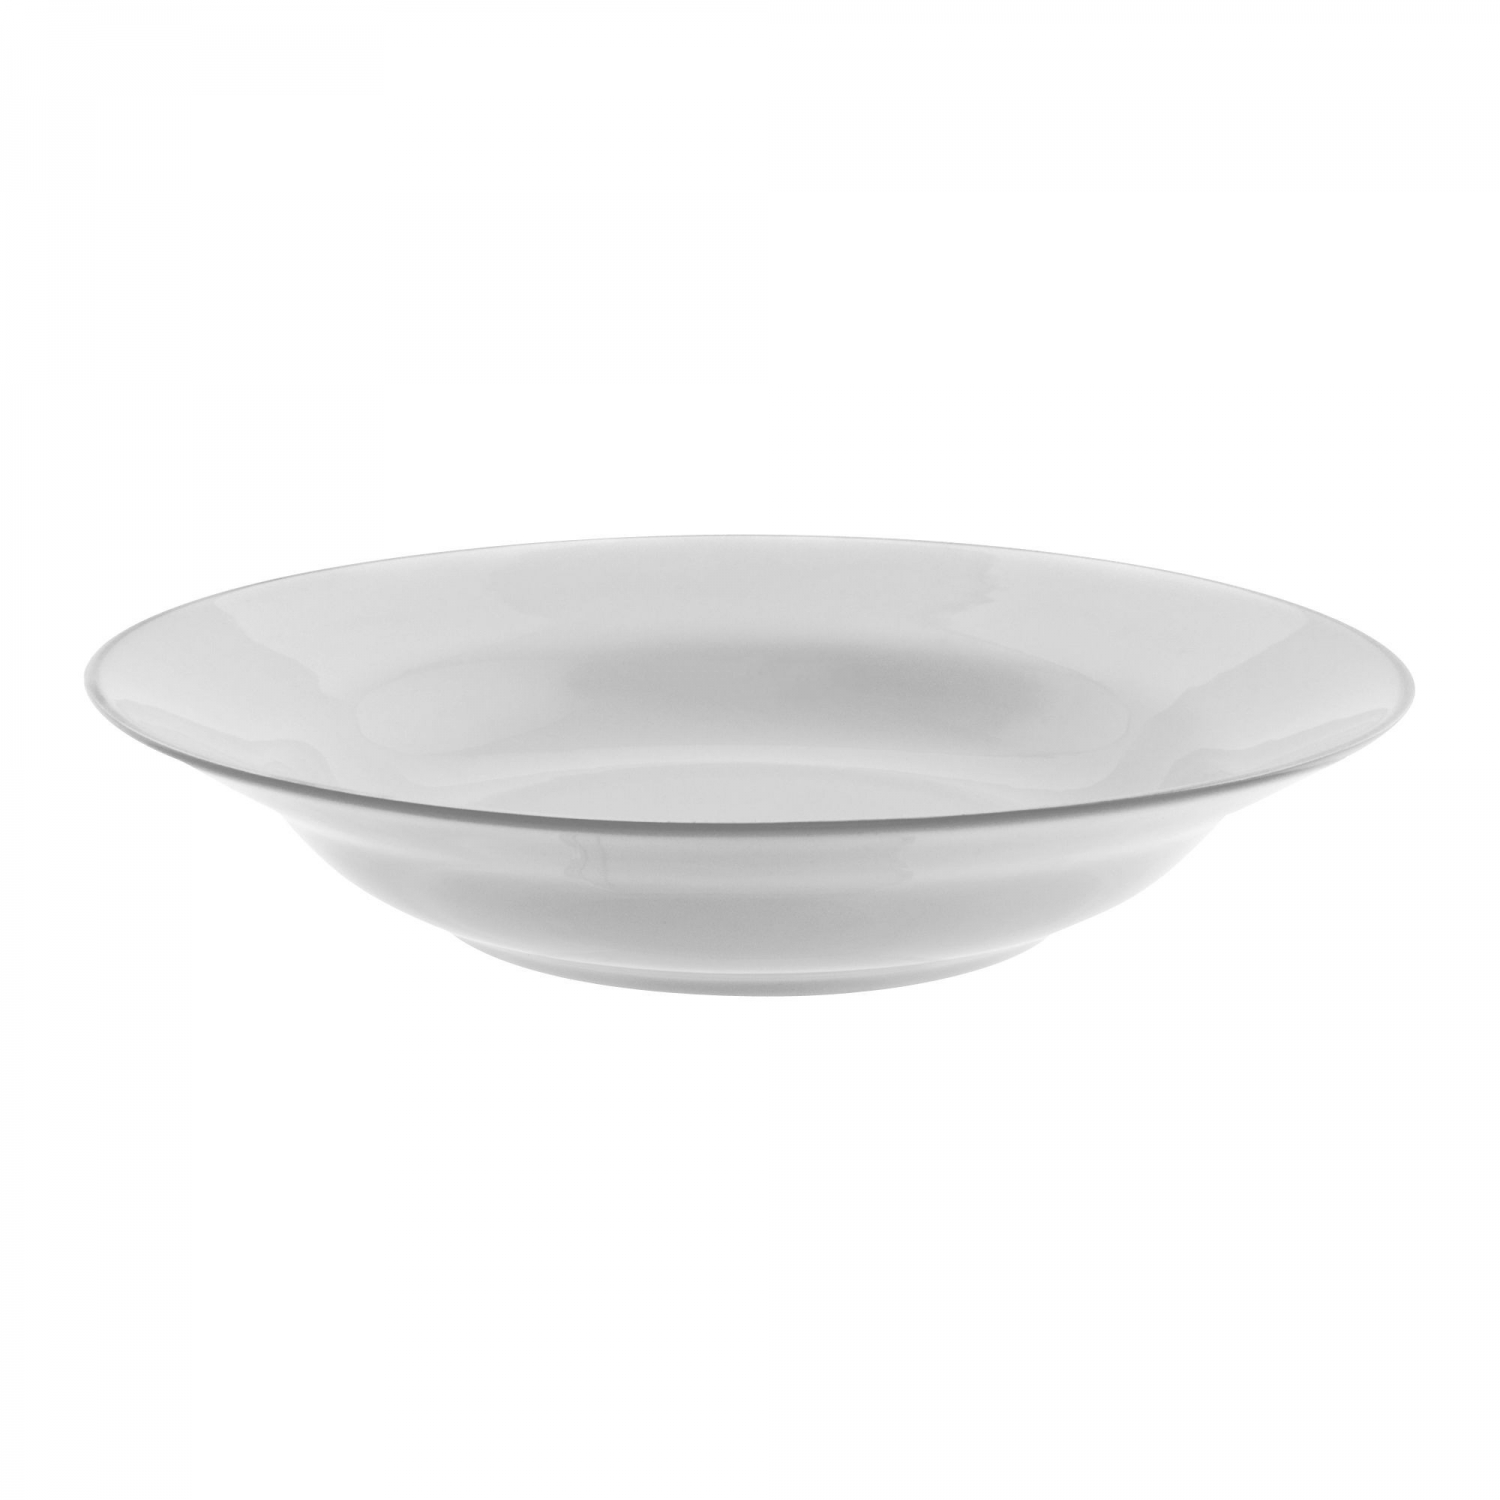 10 Strawberry Street SL0003 Silver Line Rim Soup Bowl 10 oz.